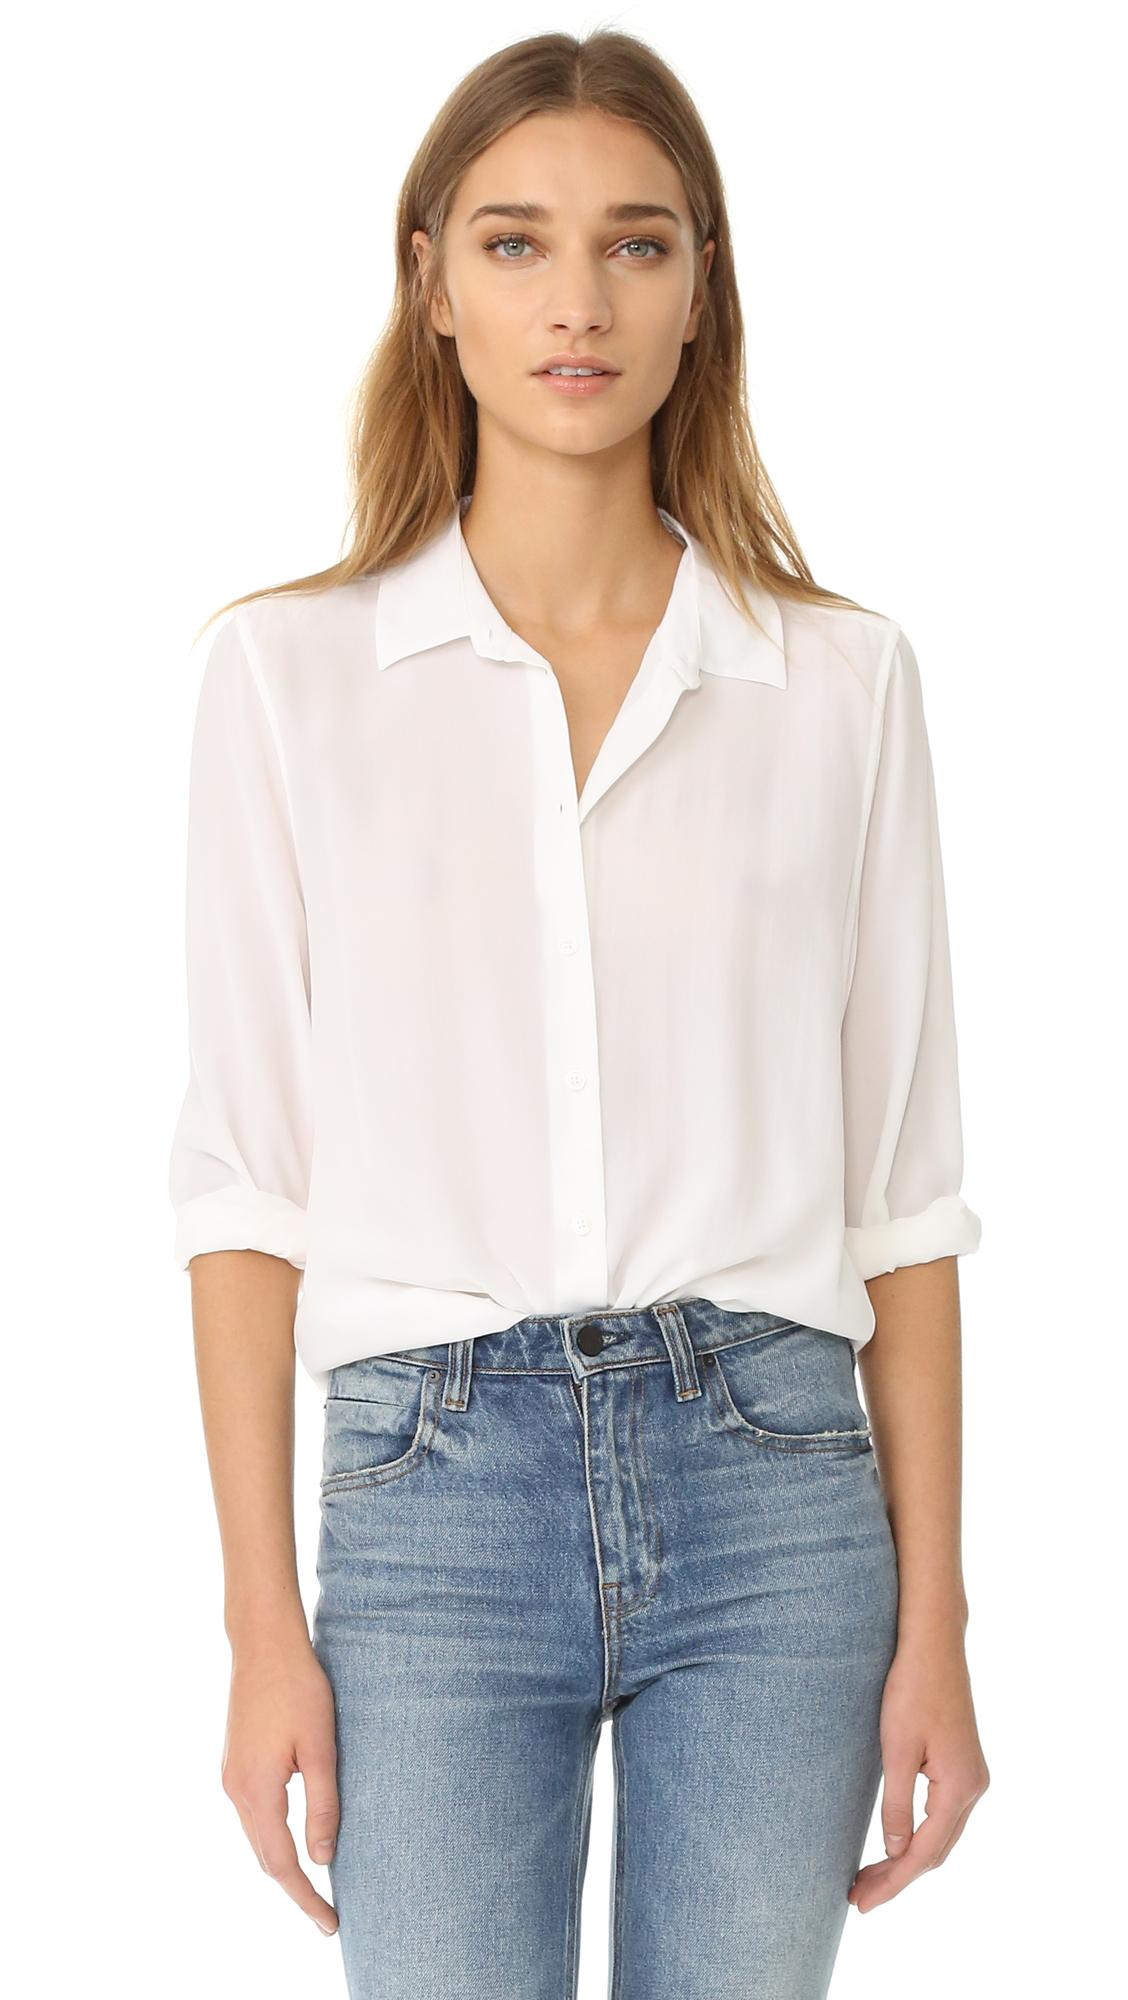 Equipment Essential Button Down Blouse in White | Lyst